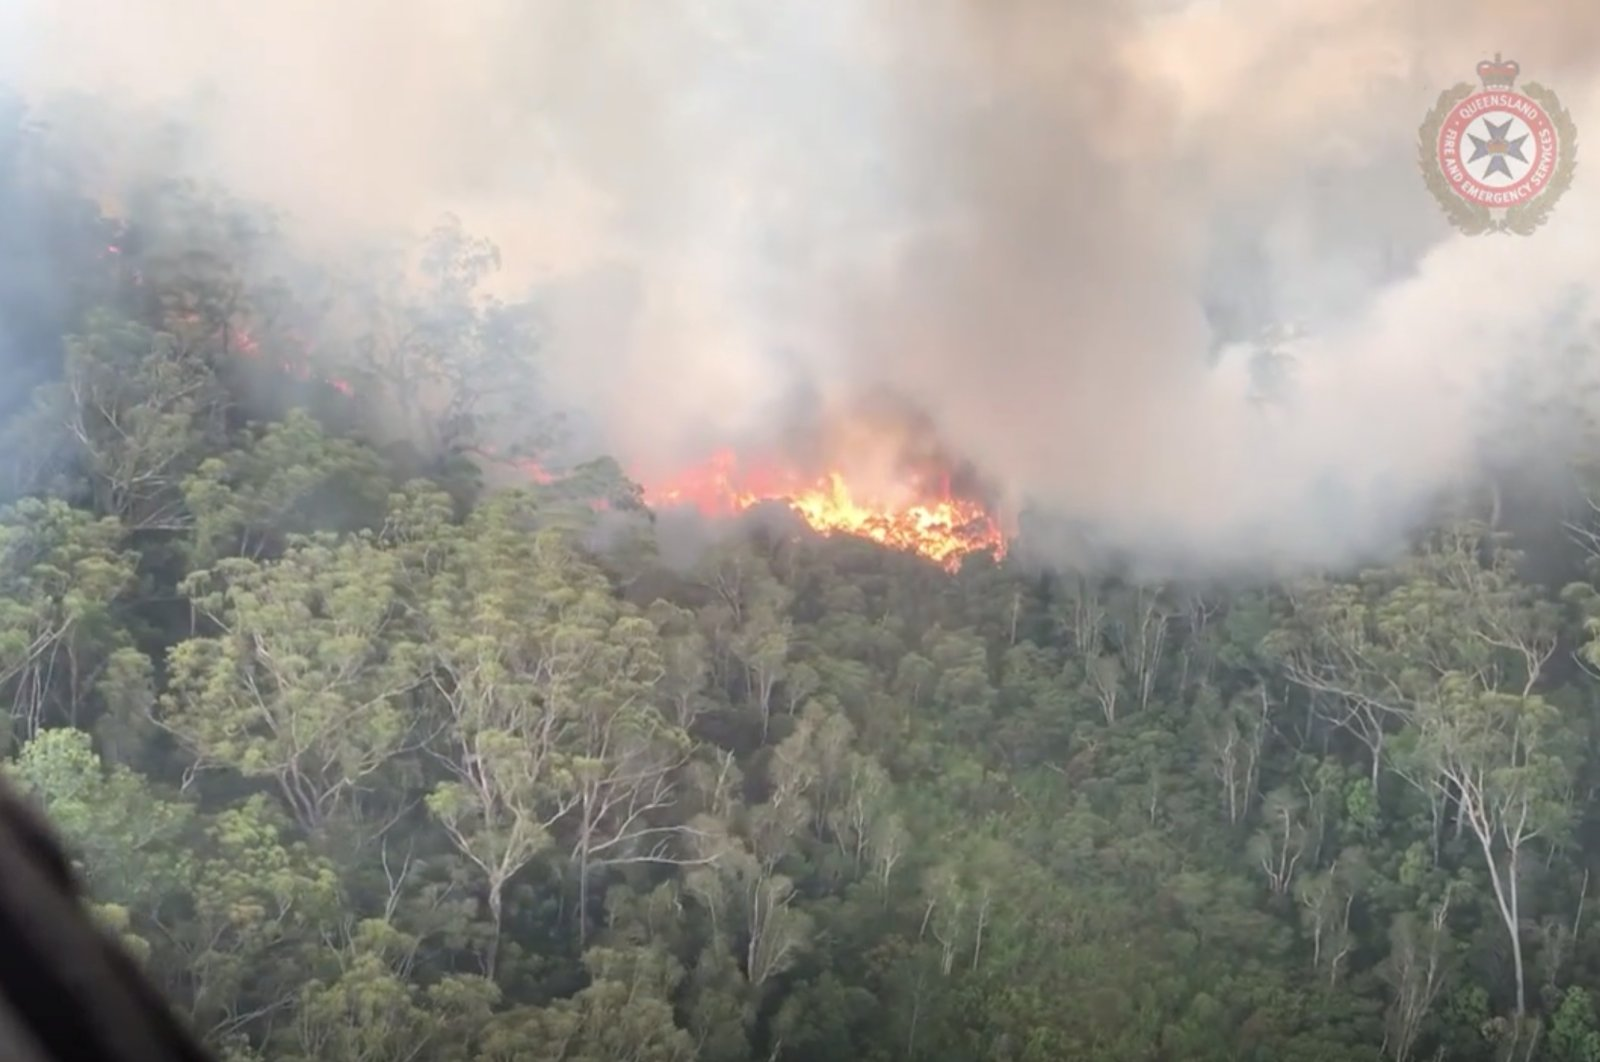 An aerial view shows bushfires on Fraser Island, Queensland, Australia, in this still image taken from video released on December 2, 2020. (Queensland Fire and Emergency Services/via Reuters)